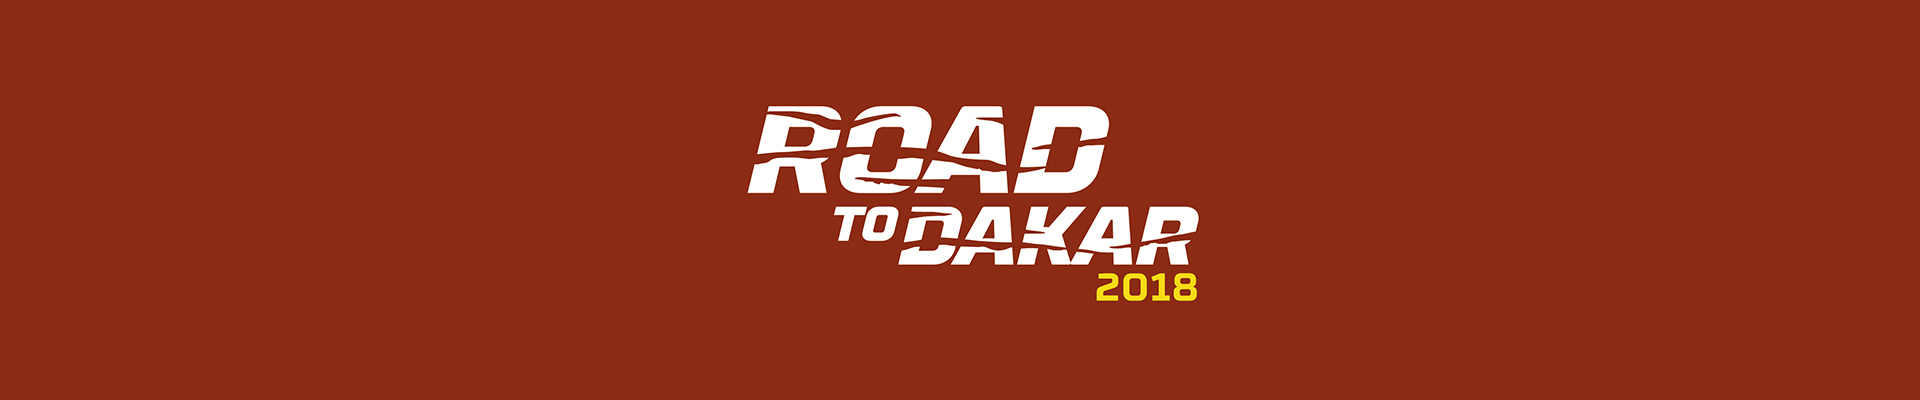 Road to Dakar 2018